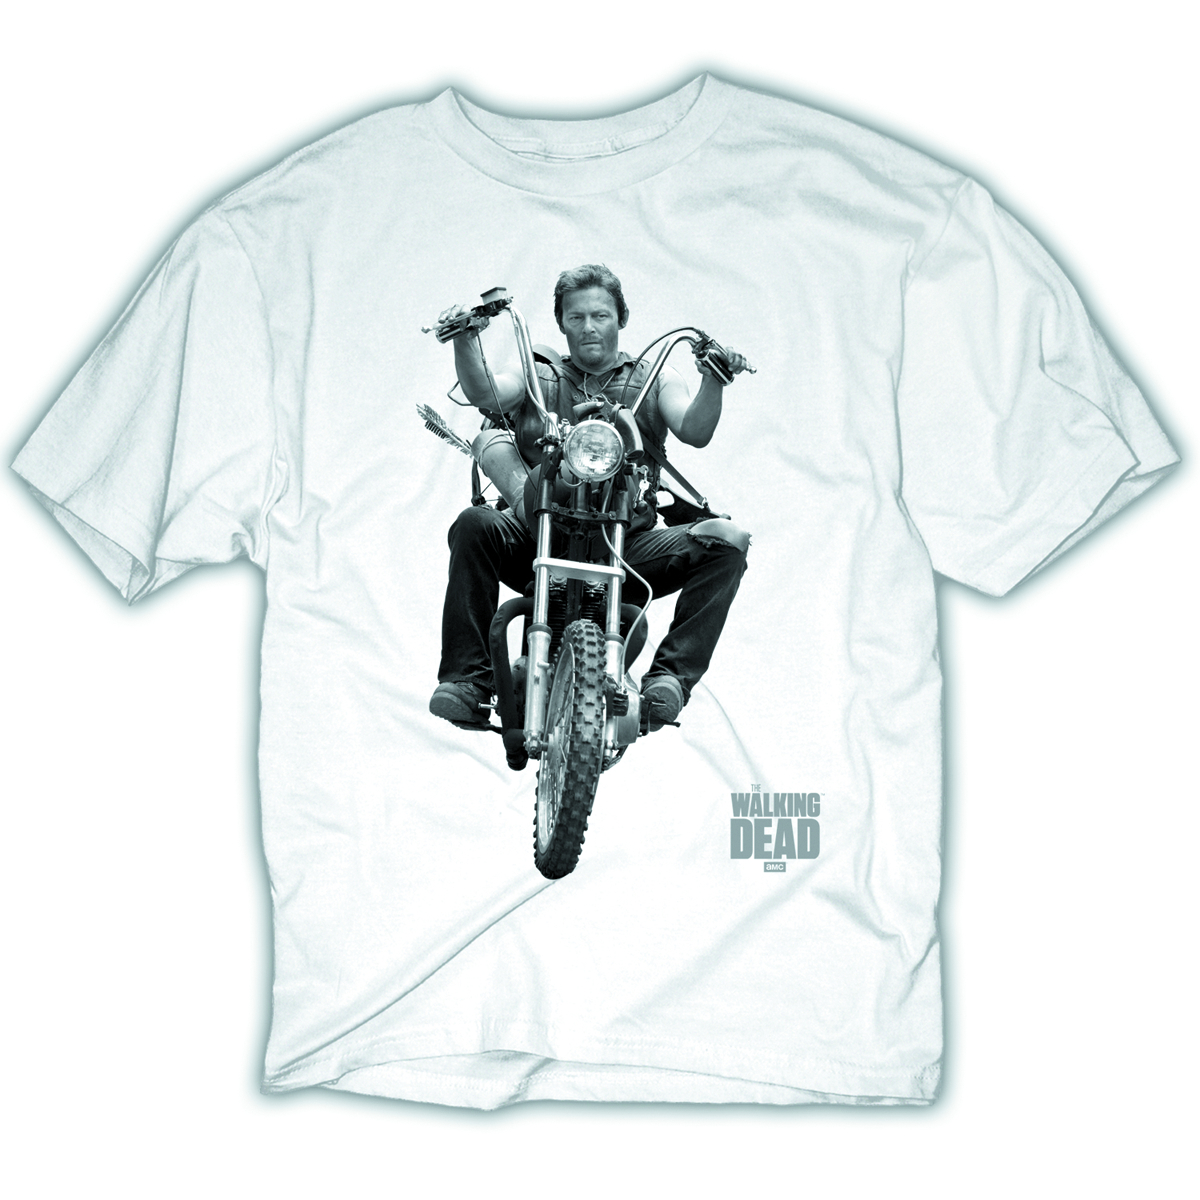 WALKING DEAD DARYL BIKE BLK T/S XXL